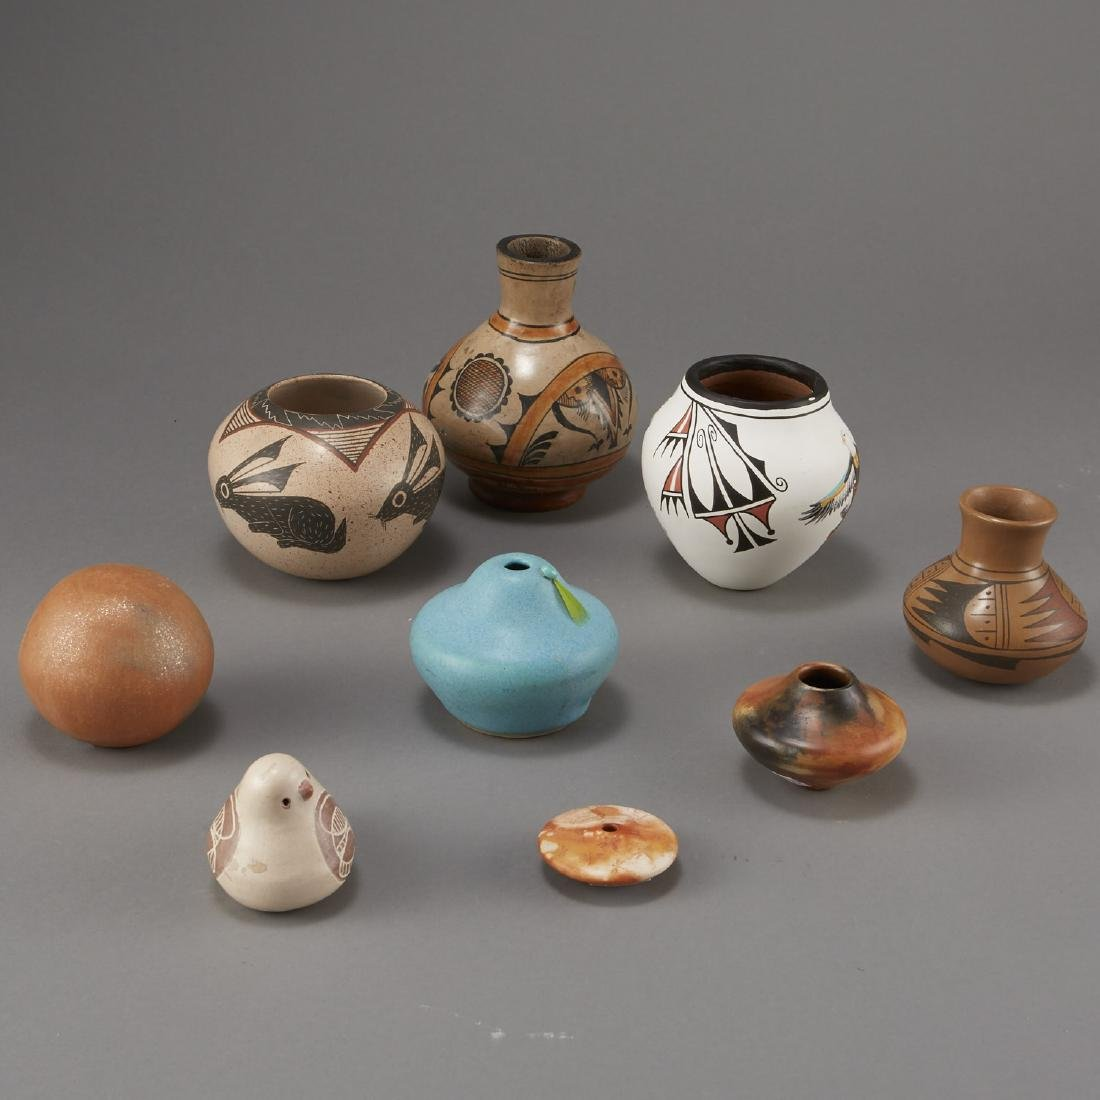 9 Pottery Pieces Pahponee, Lujan-Hauer, Mateos - 4